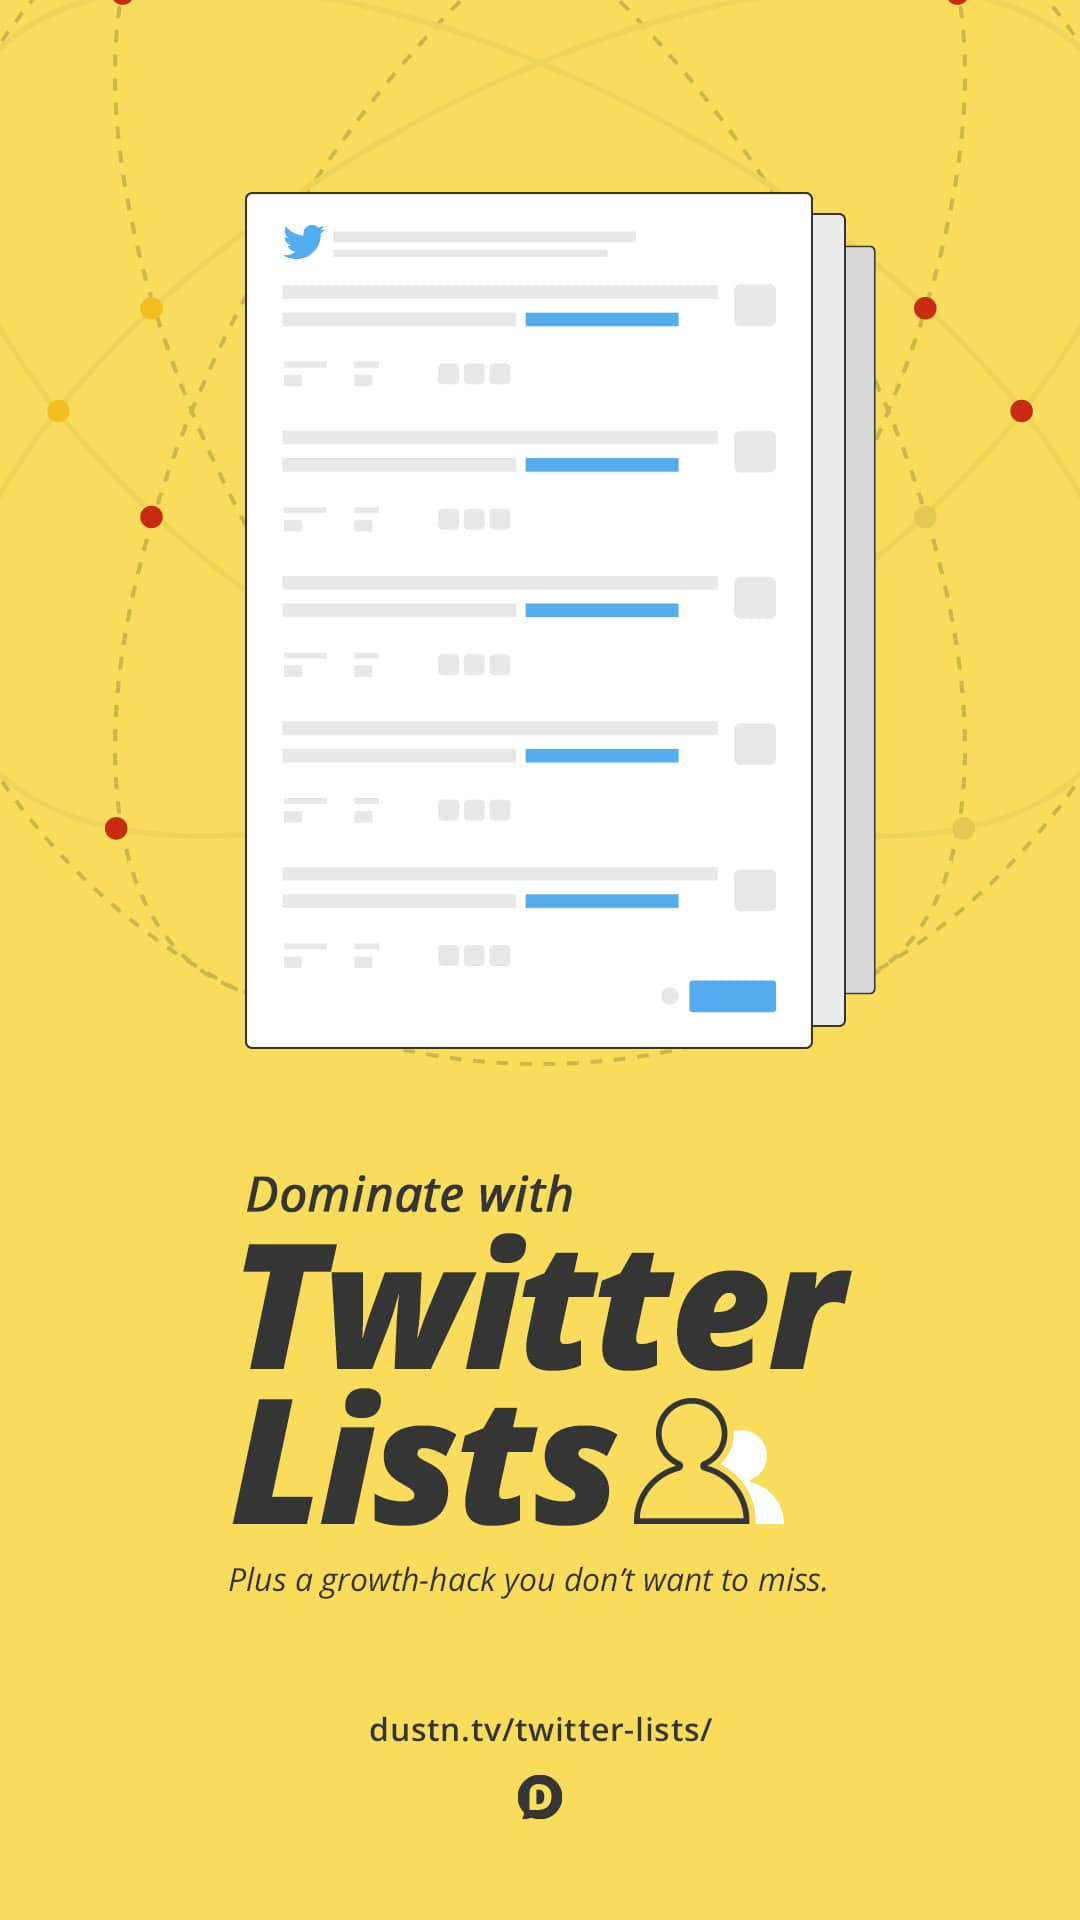 Twitter lists will allow you to supercharge your networking and connecting with the people who matter most to your business. So take and apply these following tips about Twitter lists and watch your network grow!